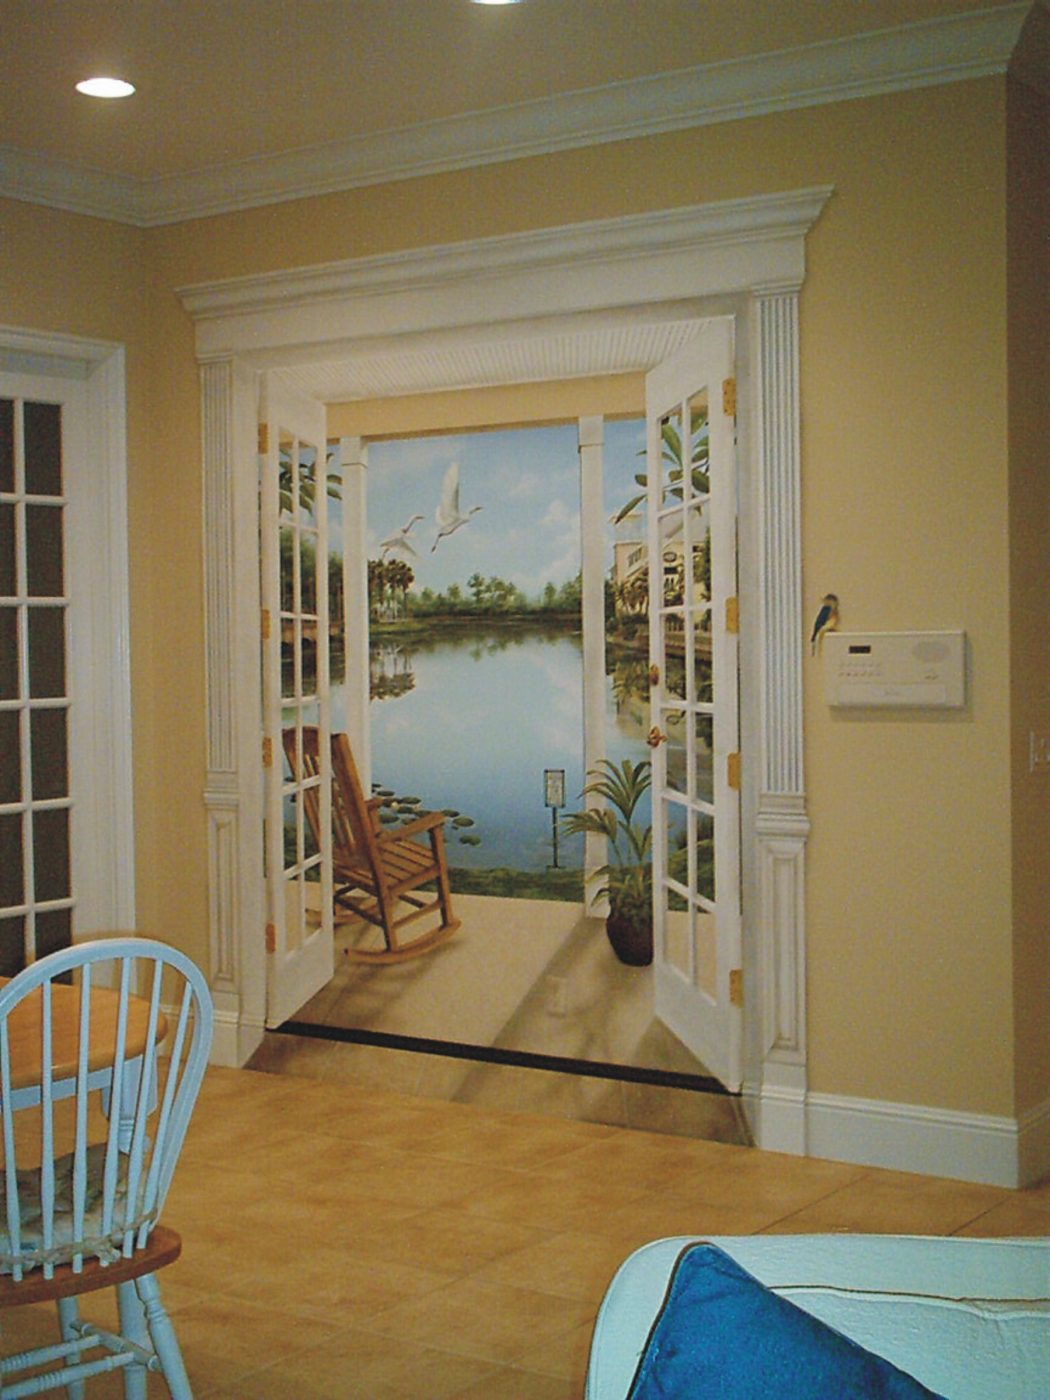 66 45 Stunning 3D Paintings for Decoration